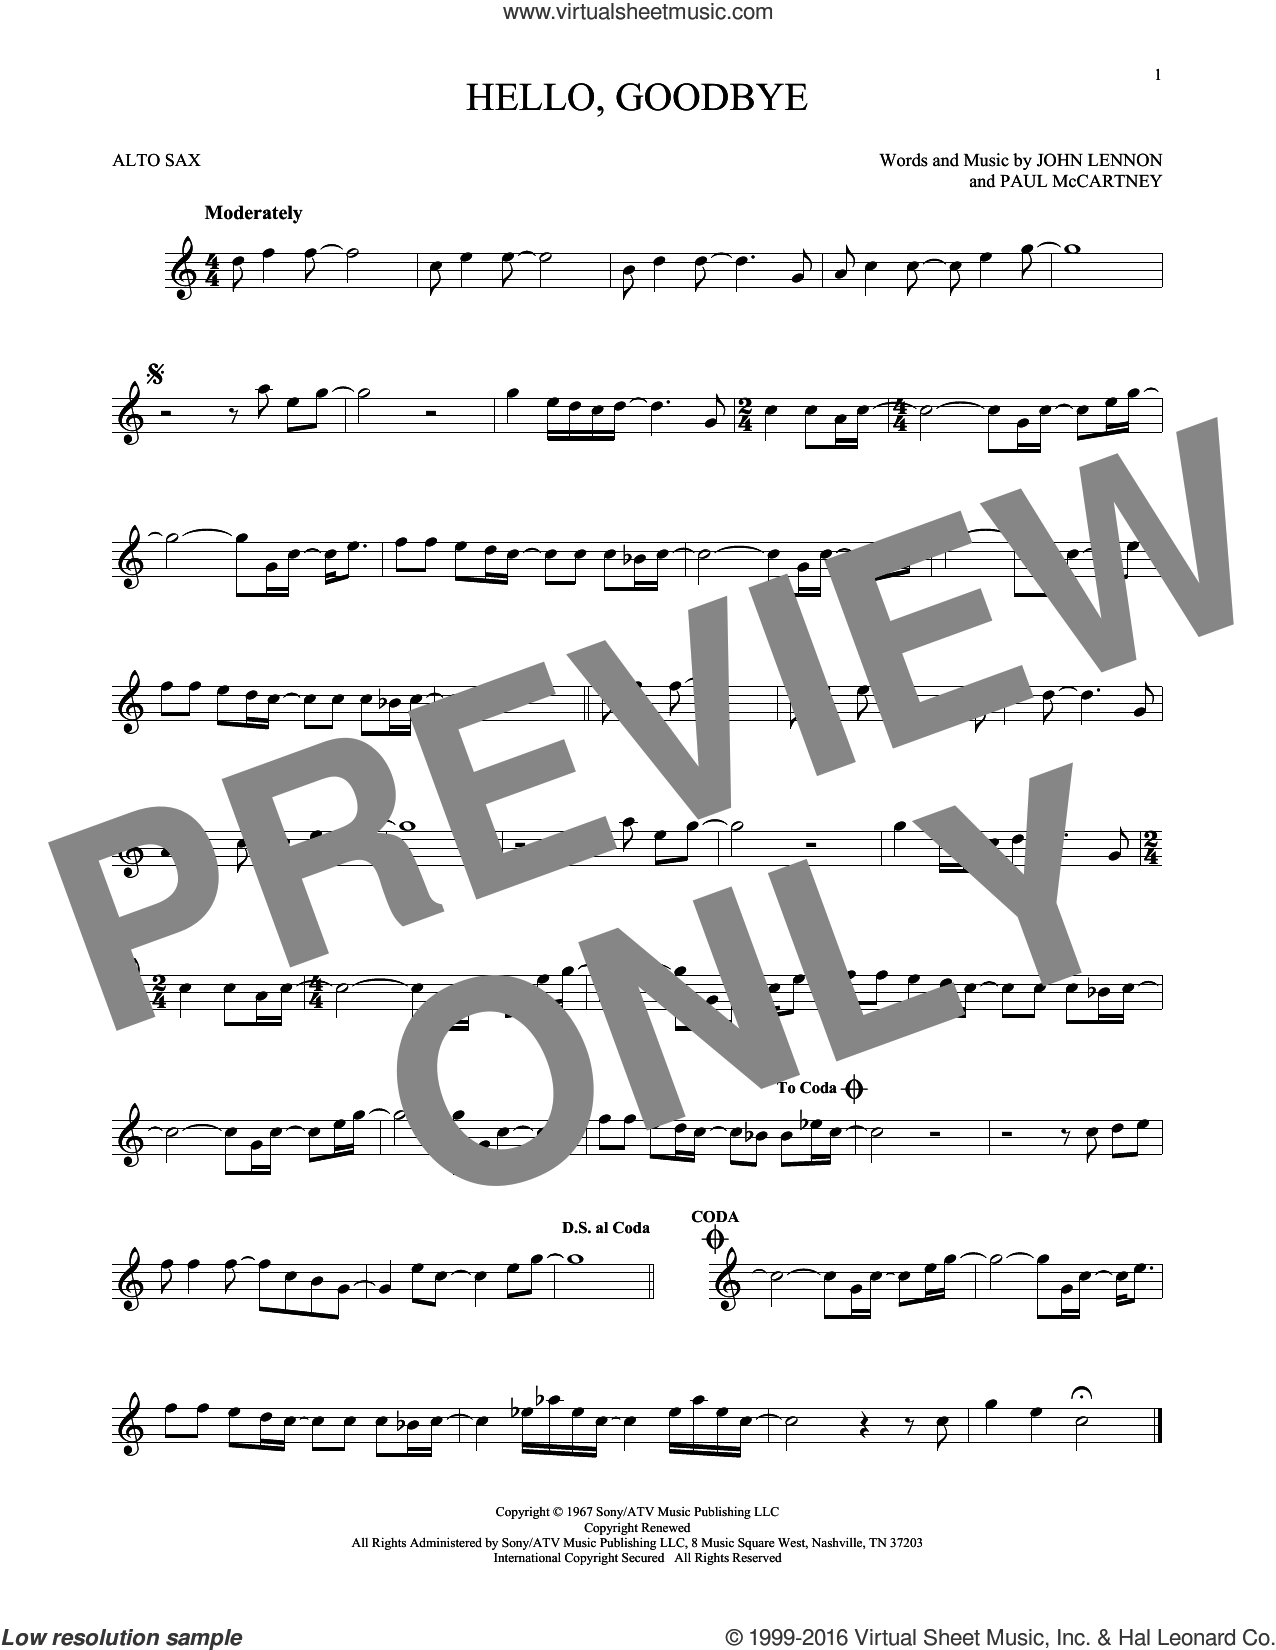 Hello, Goodbye sheet music for alto saxophone solo by The Beatles, John Lennon and Paul McCartney, intermediate skill level